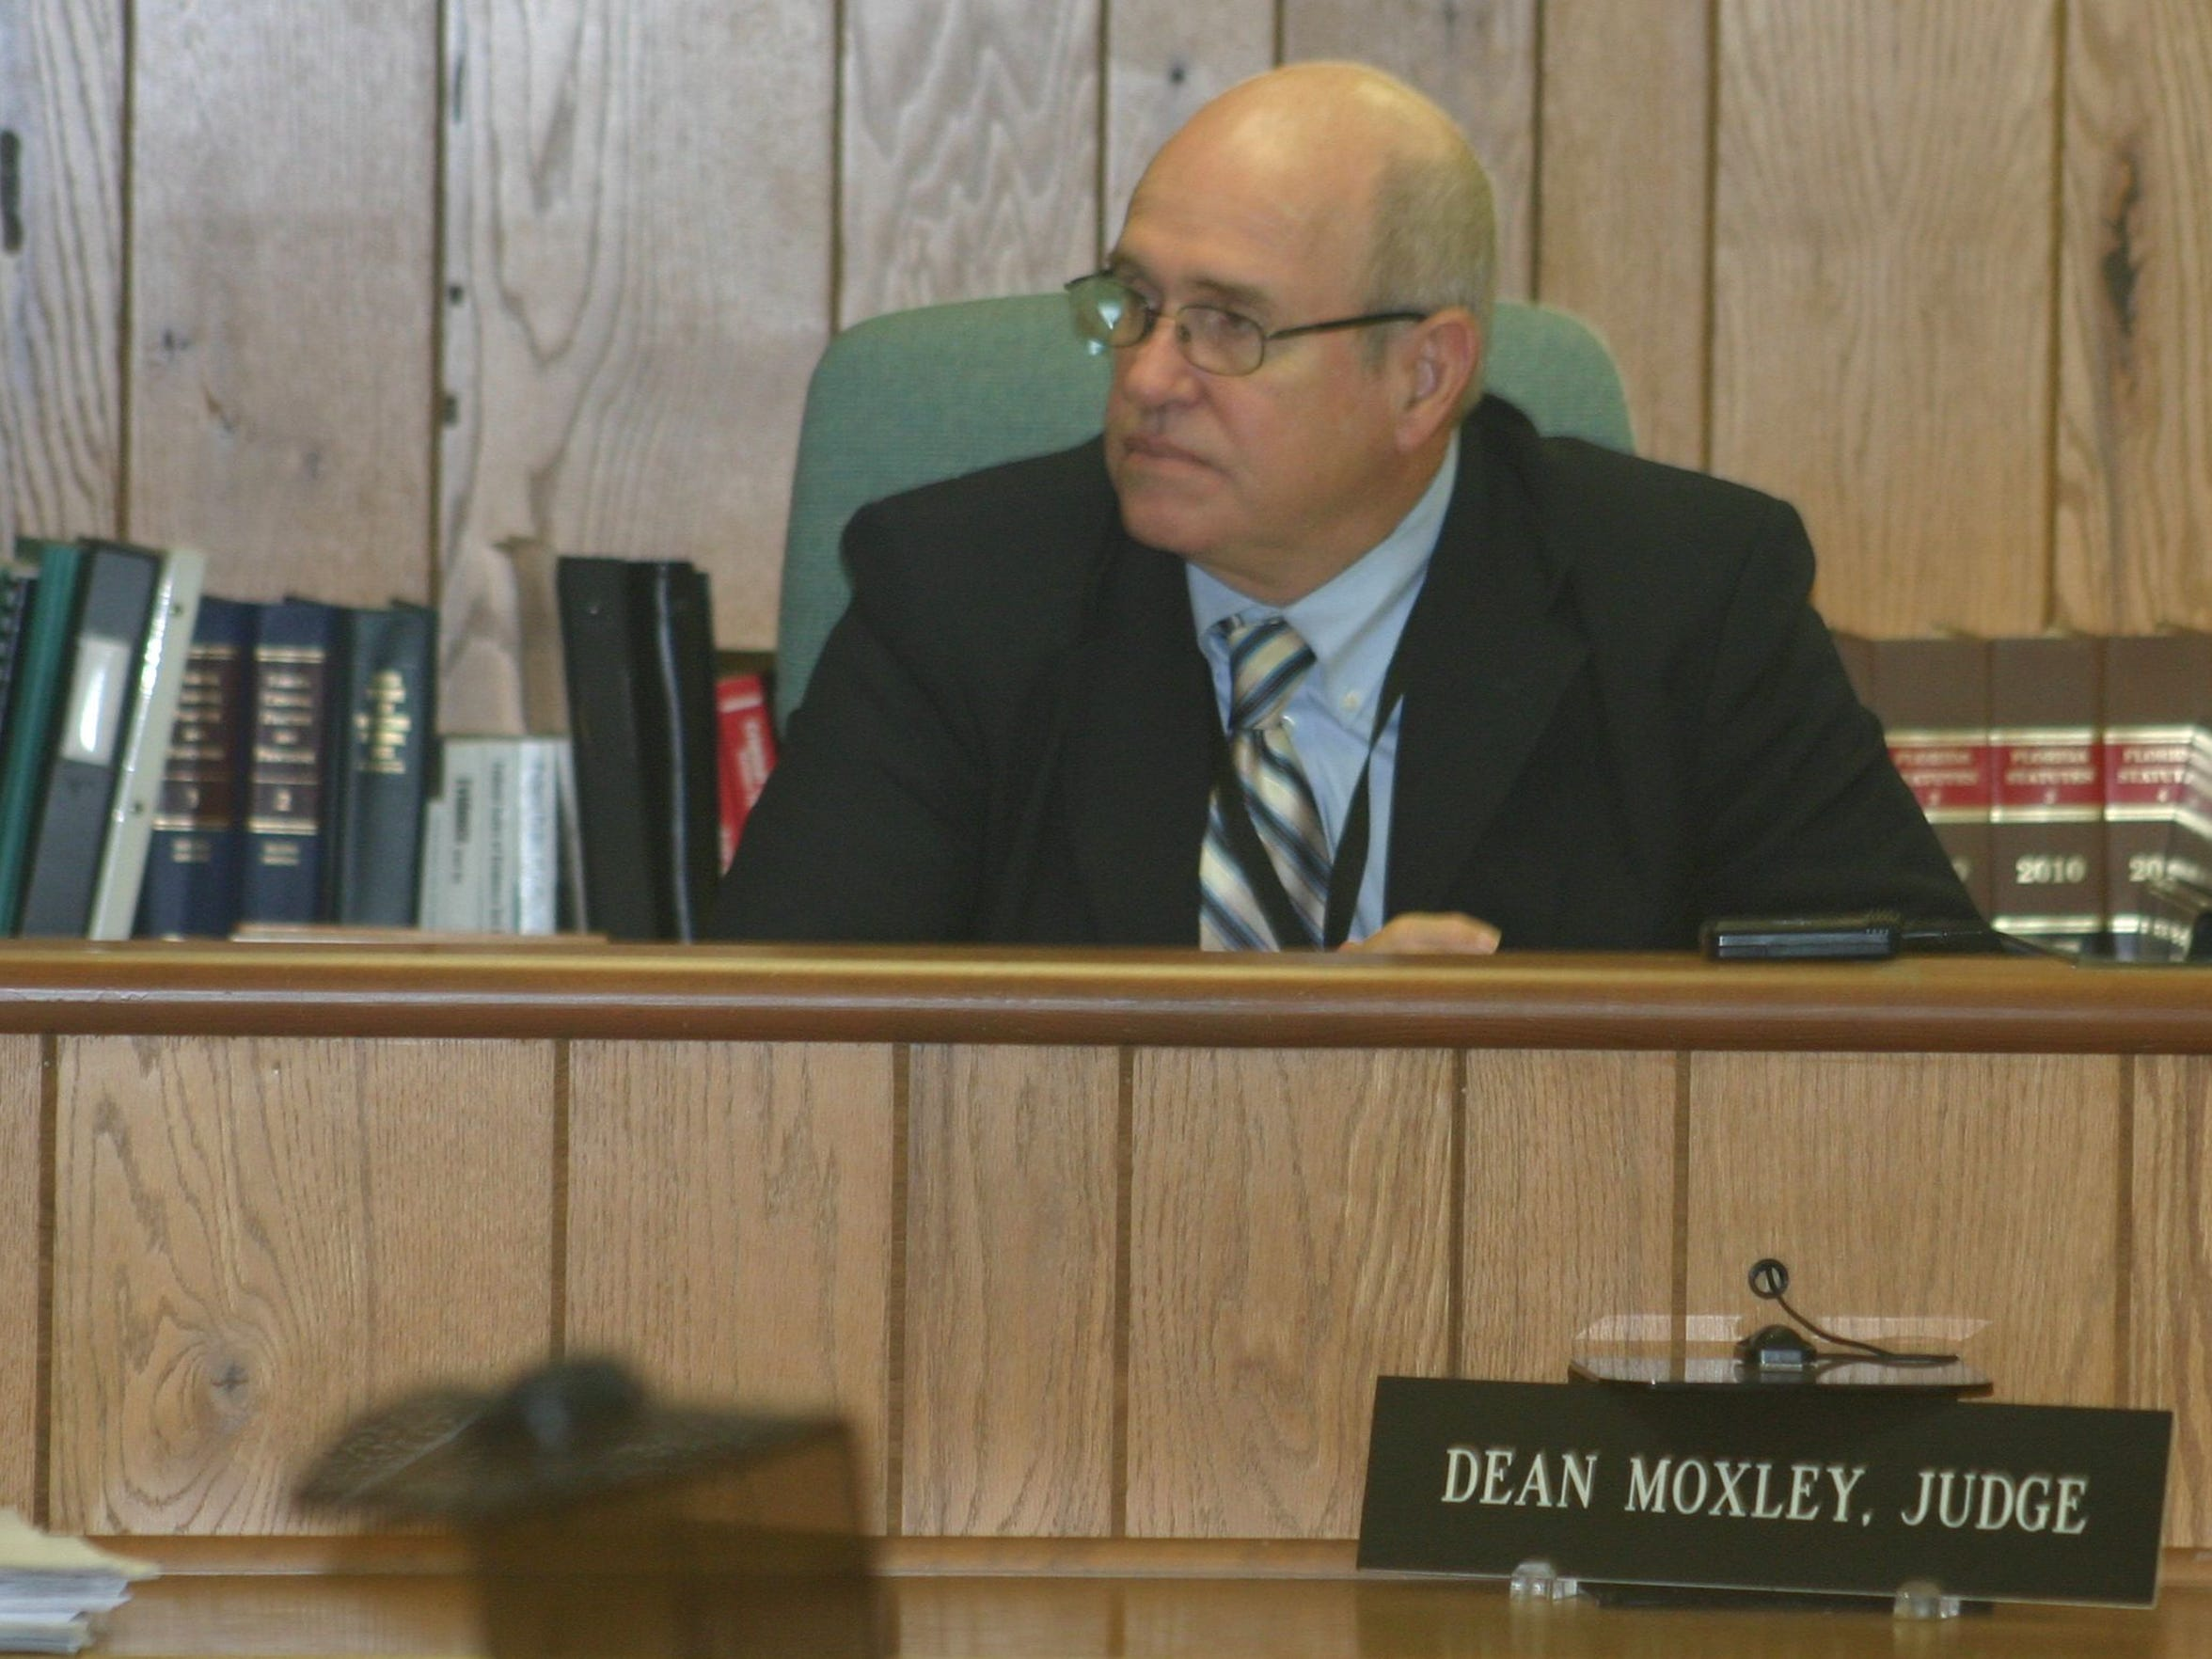 Circuit Judge John Dean Moxley Jr. during a hearing involving the Economic Development Commission of Florida's Space Coast on Friday, Jan. 31, 2014 at the Titusville Courthouse.